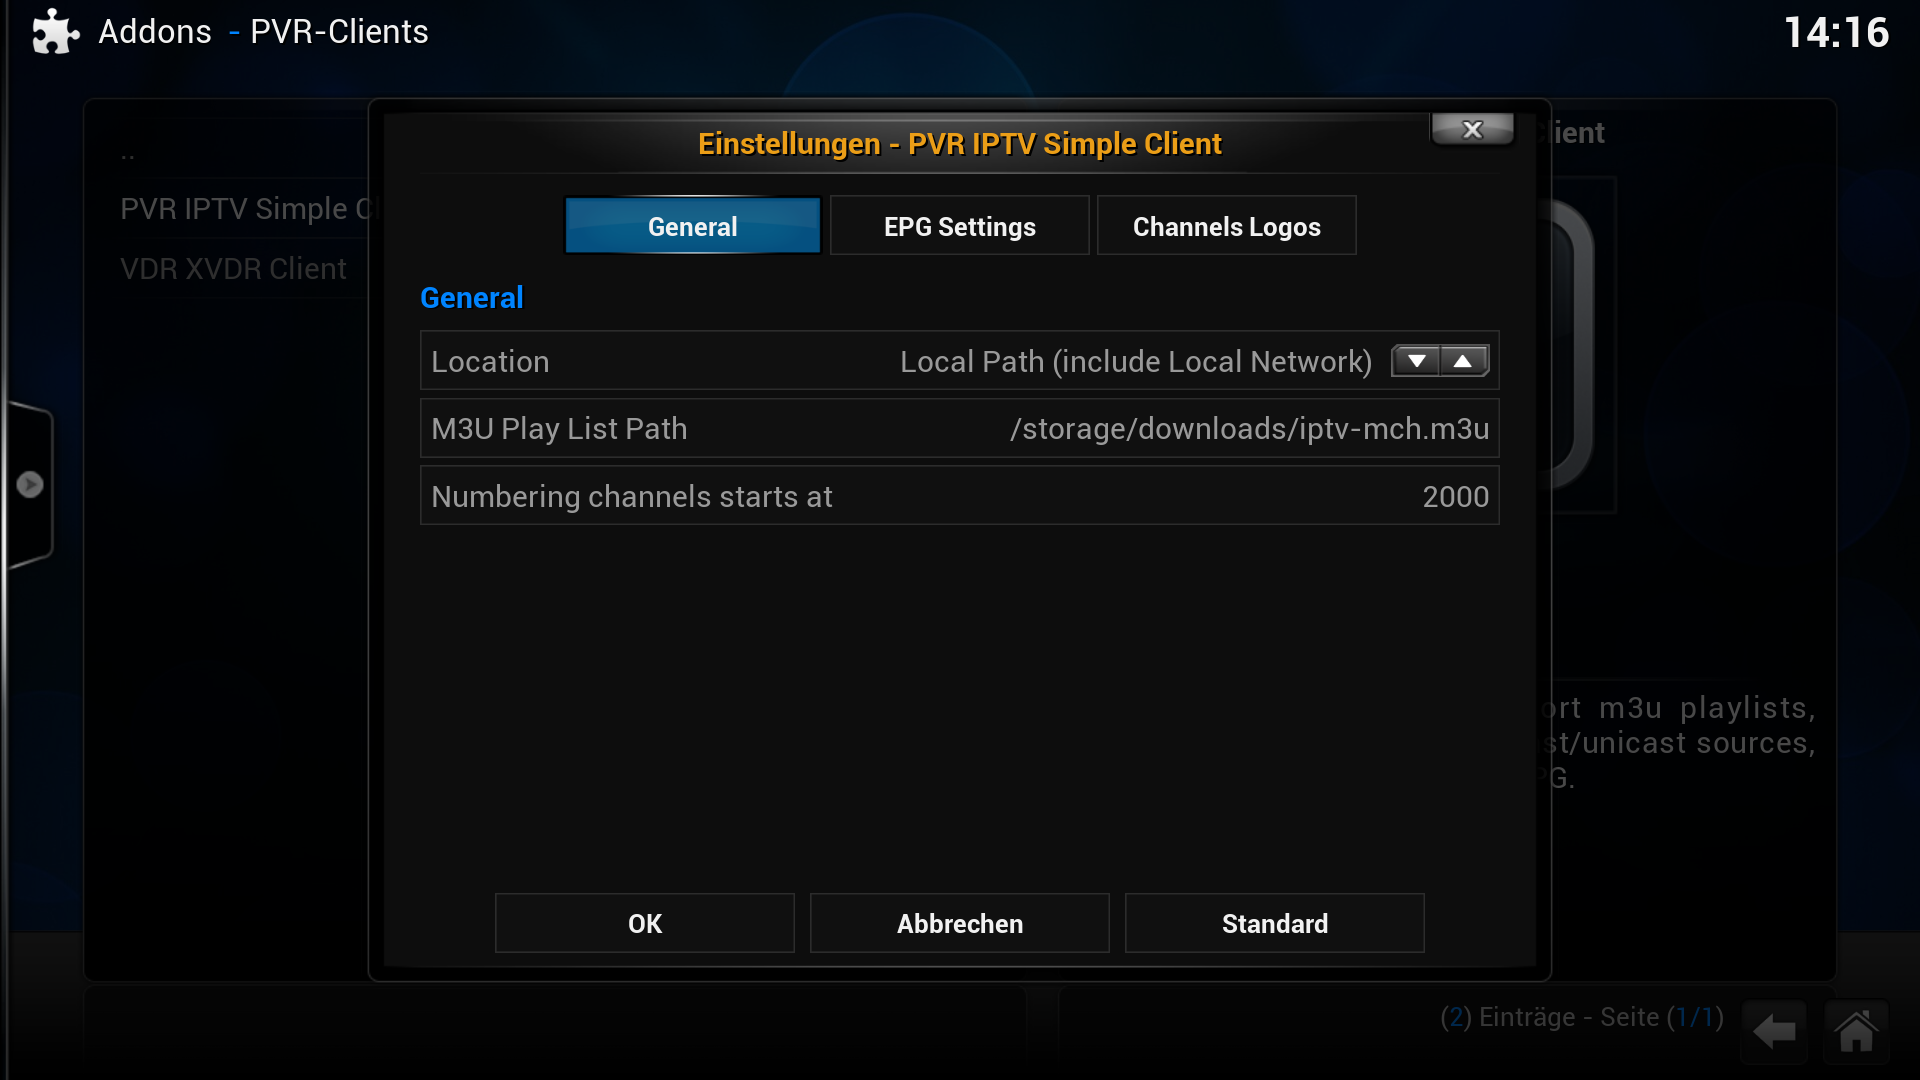 [Image: openelec-pvr-iptv-simple-settings.png]